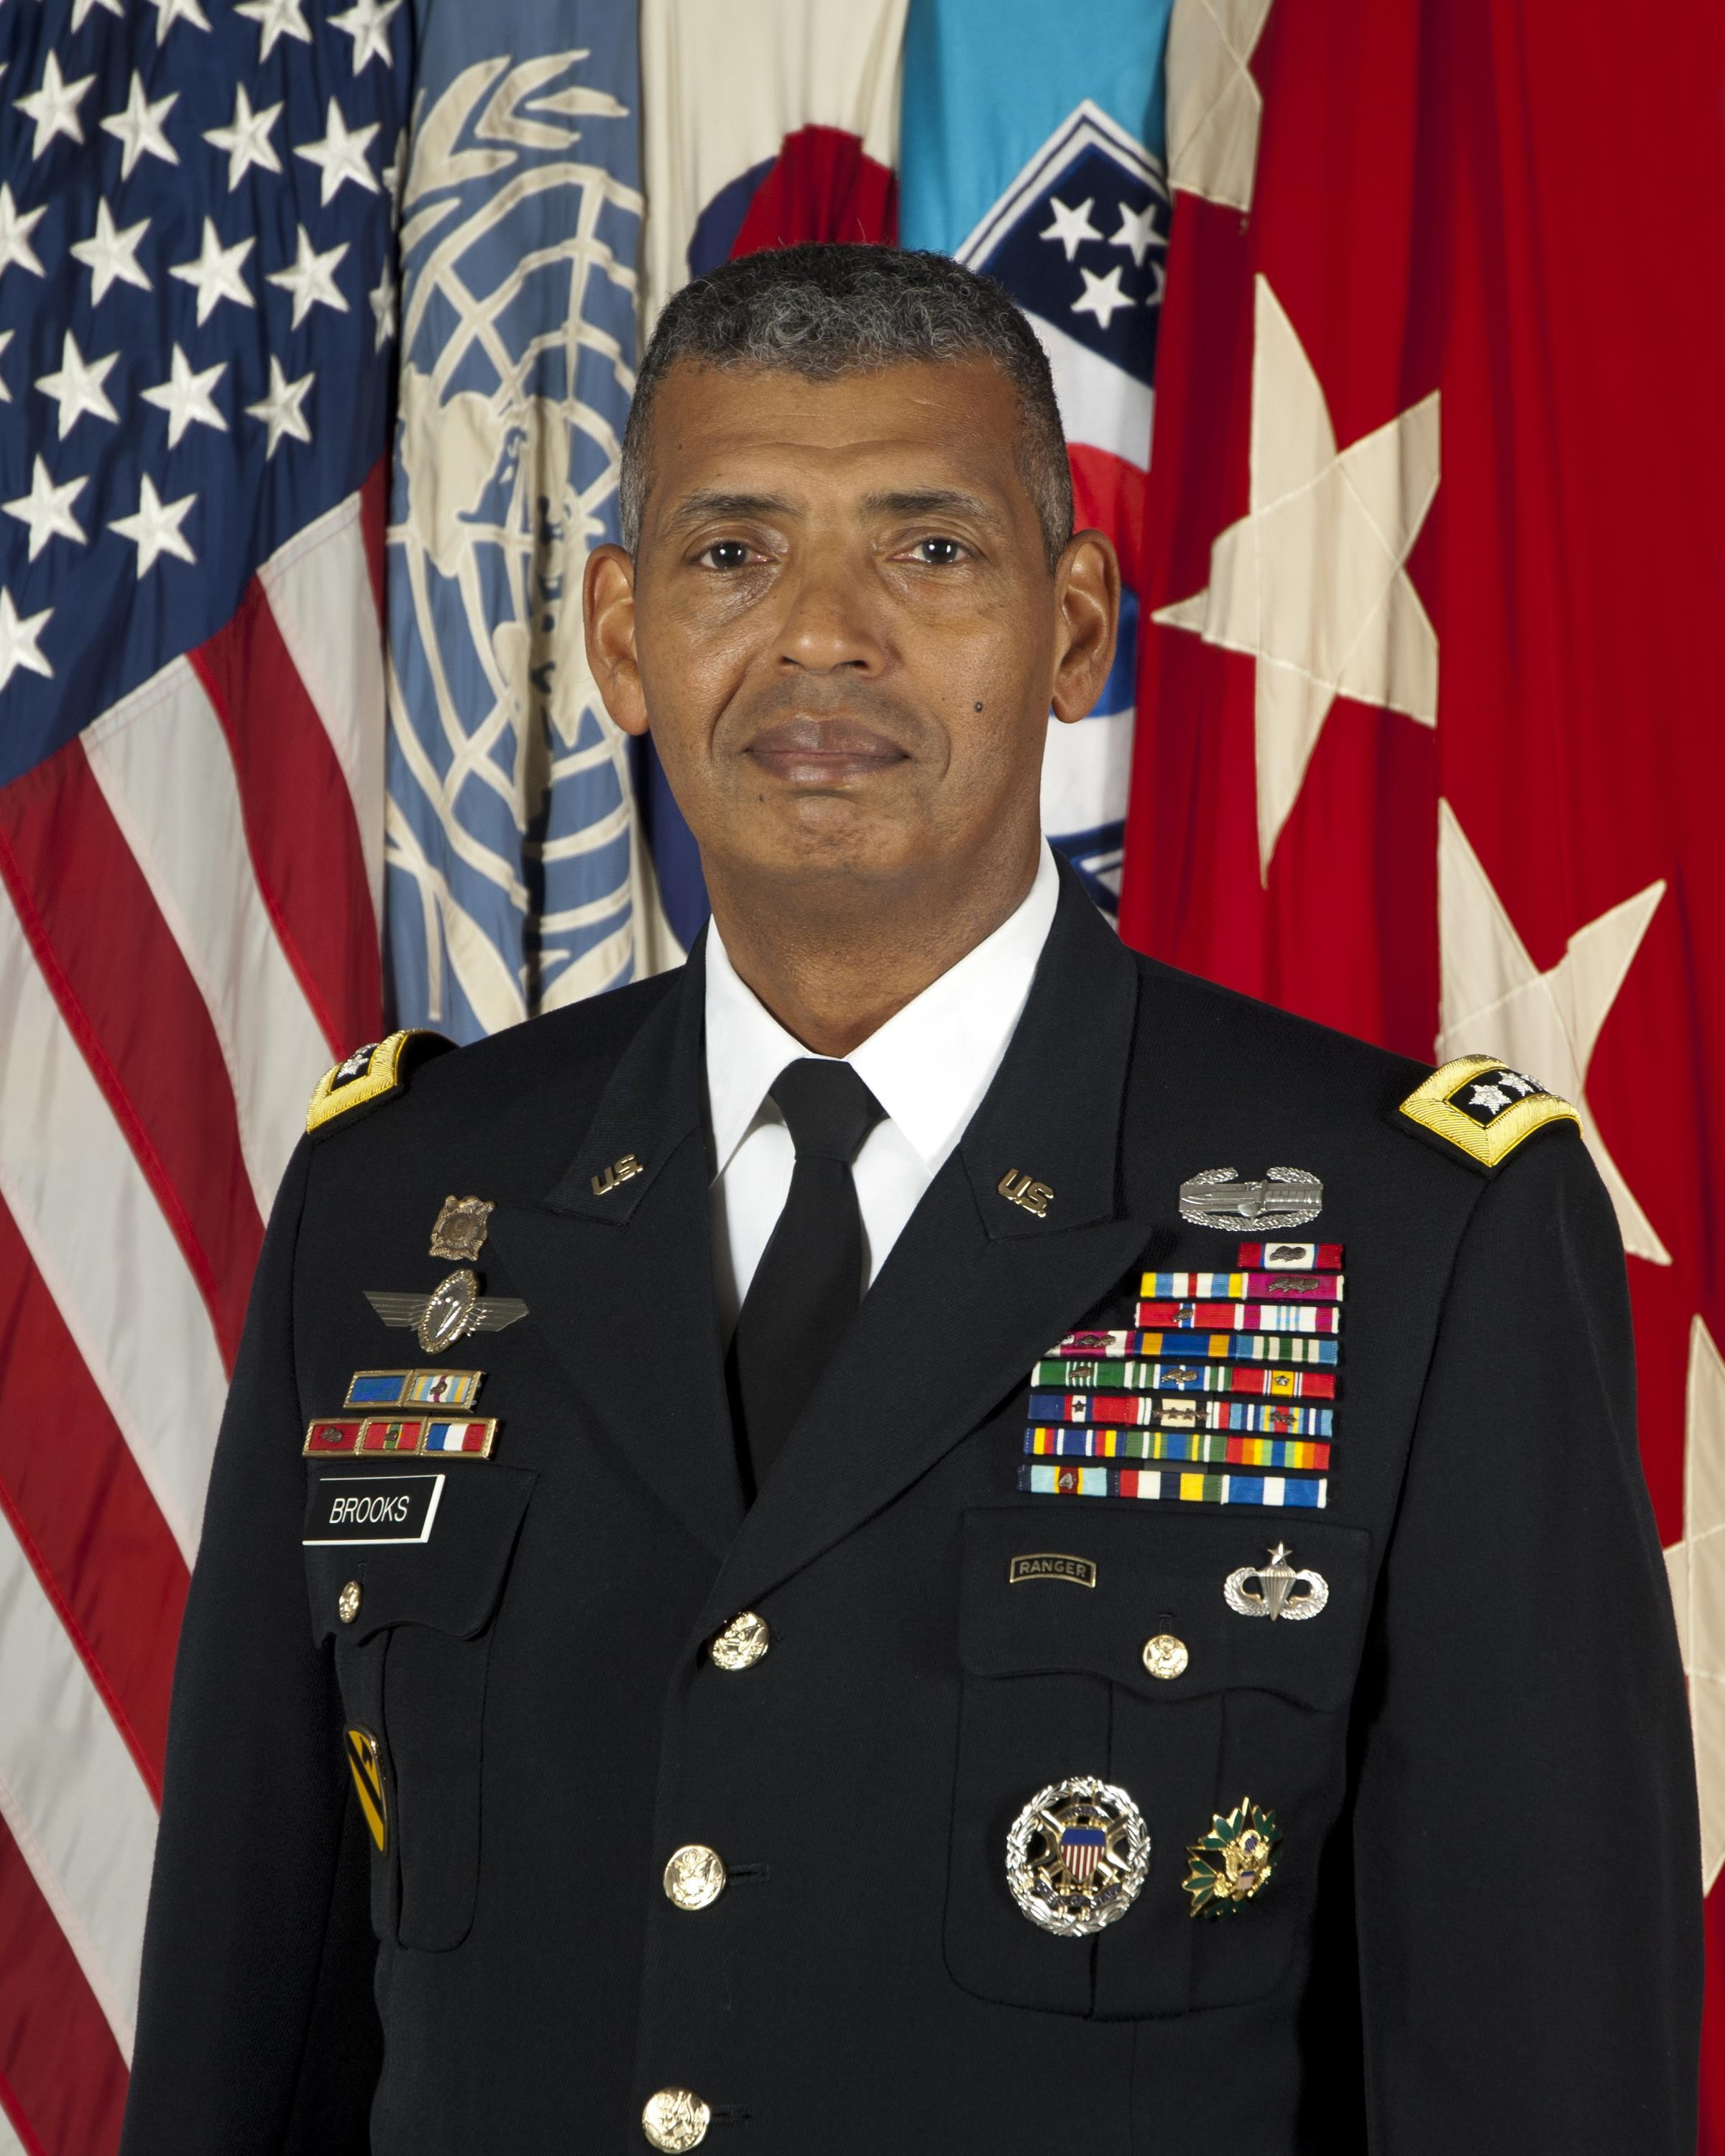 General Quot Brooks Sends Quot May 2016 Volume 1 Article The